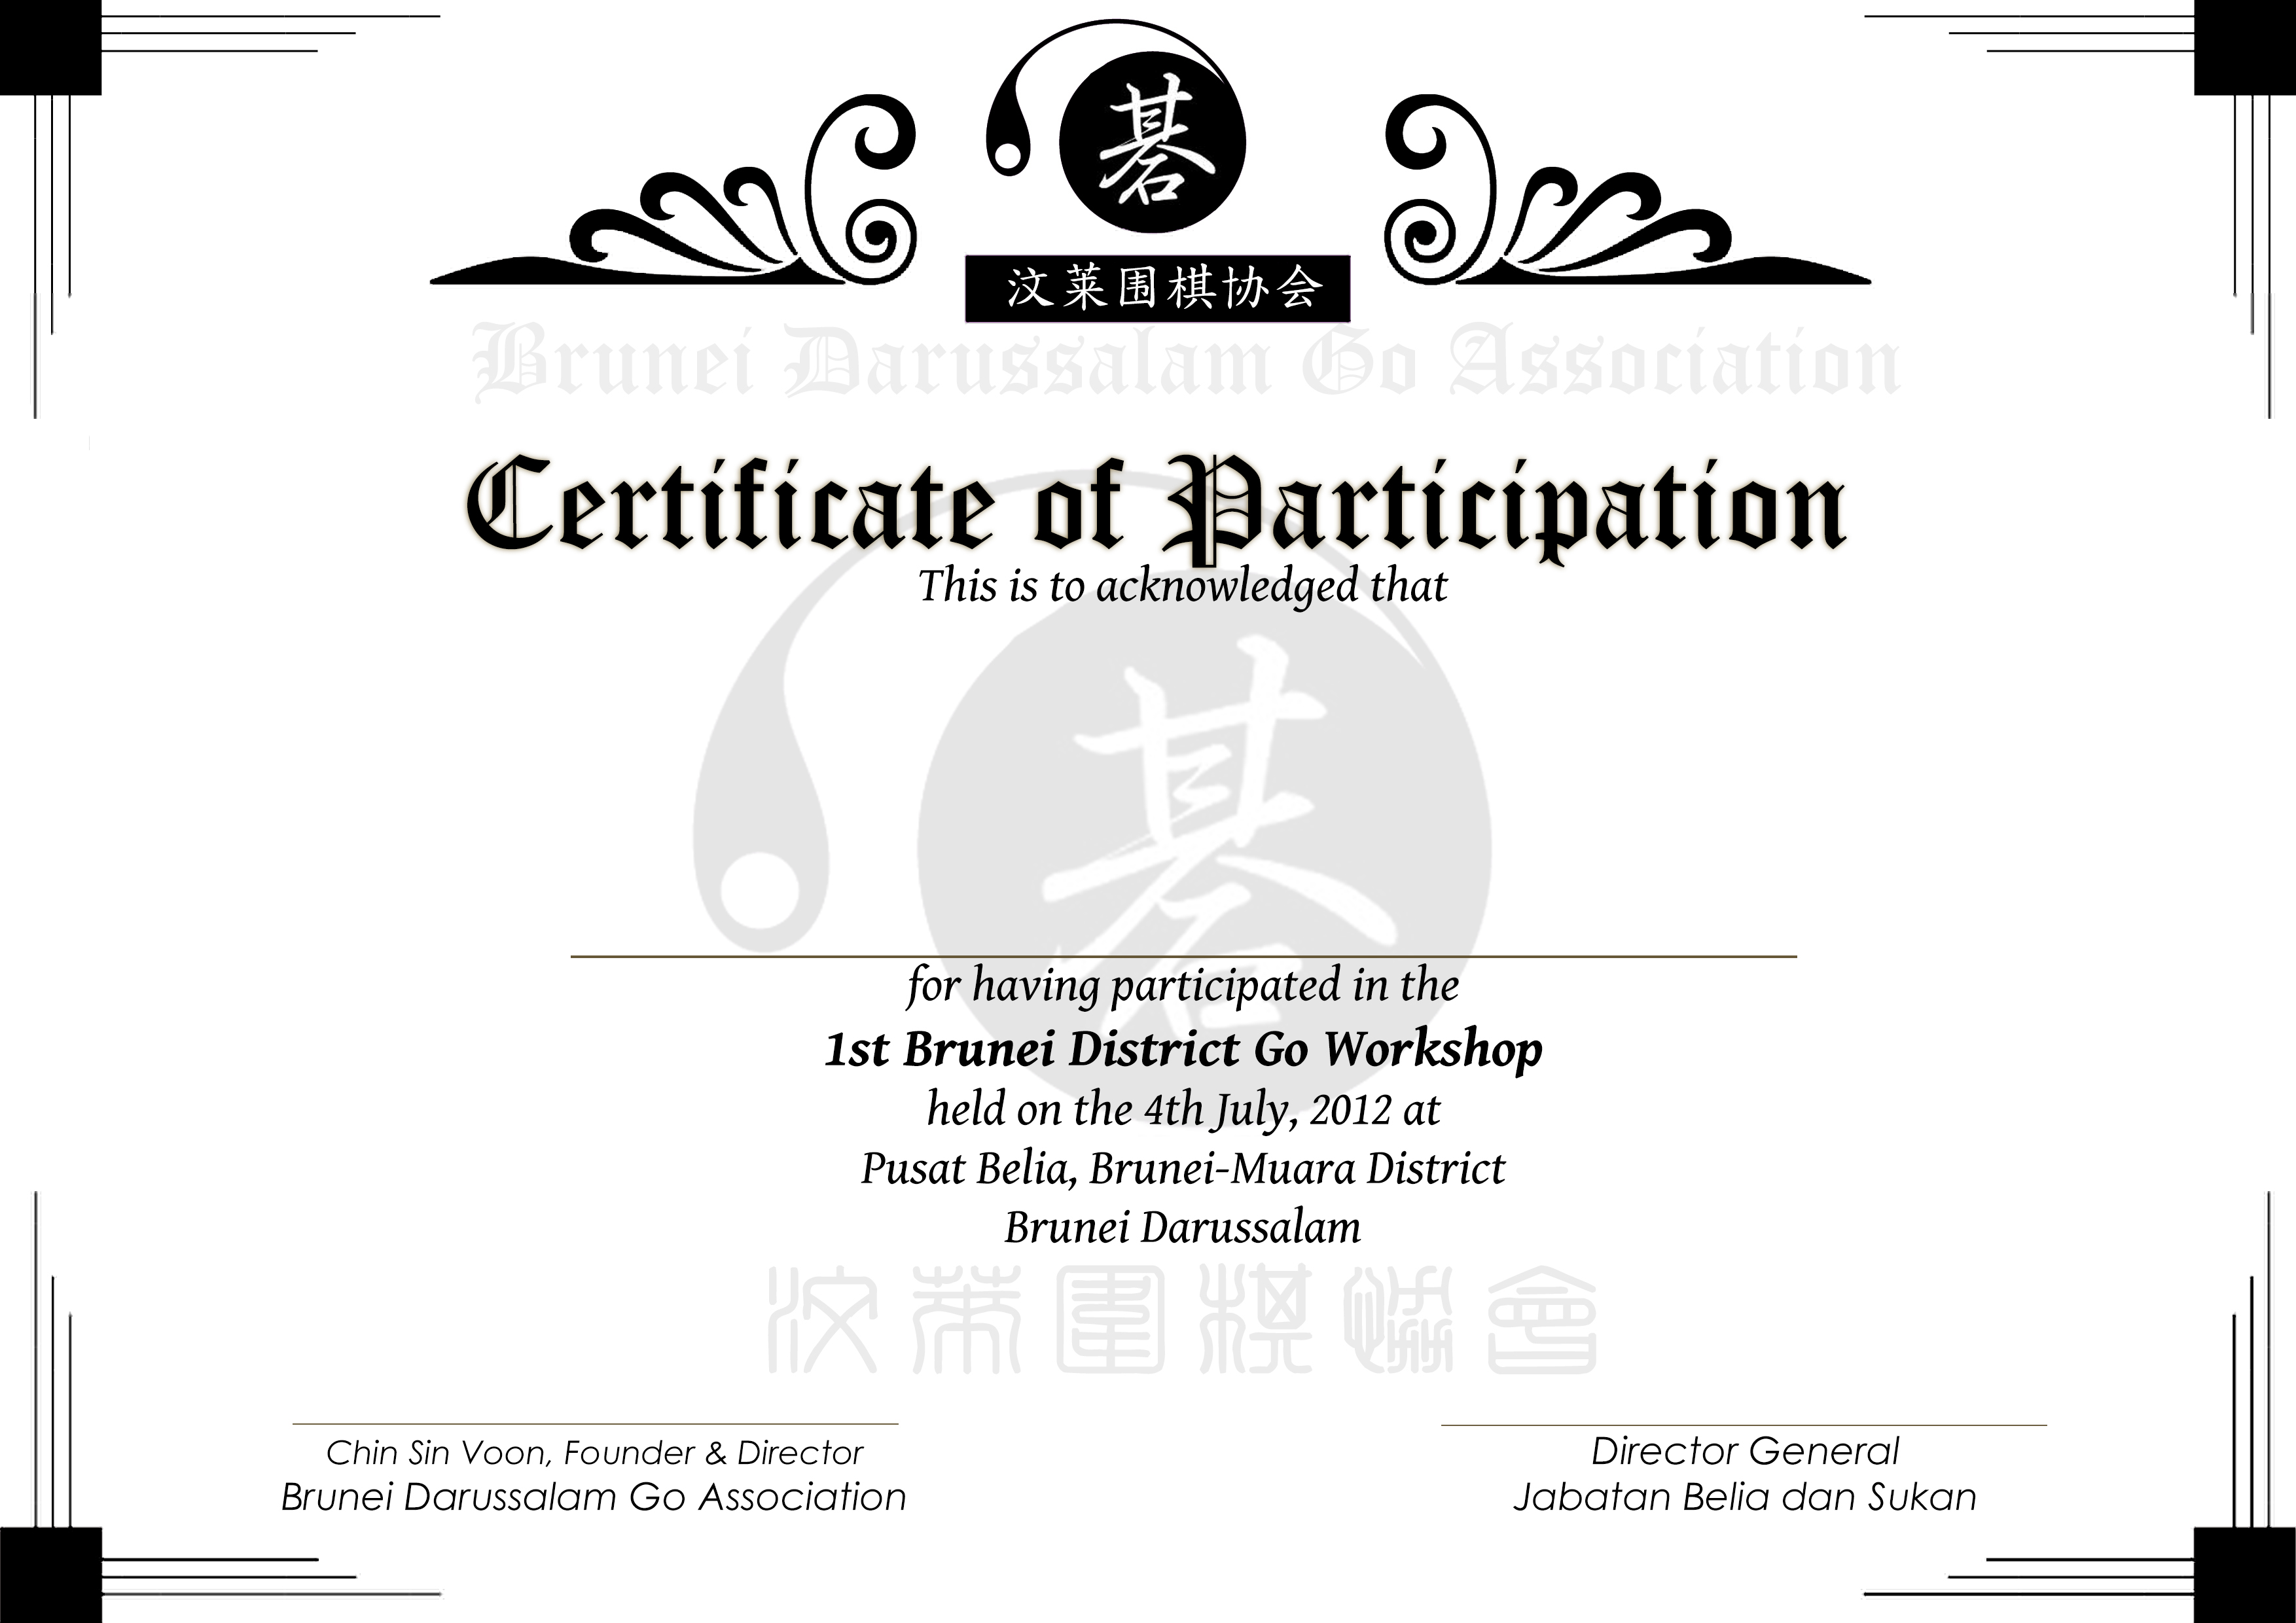 Superb Preview] BDGA Certificate Design 欣æu2013u2021ã ®åu203a²ç¢ ä¸u2013çu2022Œ Certificate Of  Participation Preview Bdga Certificate Design Design Of Certificate Of  Participation